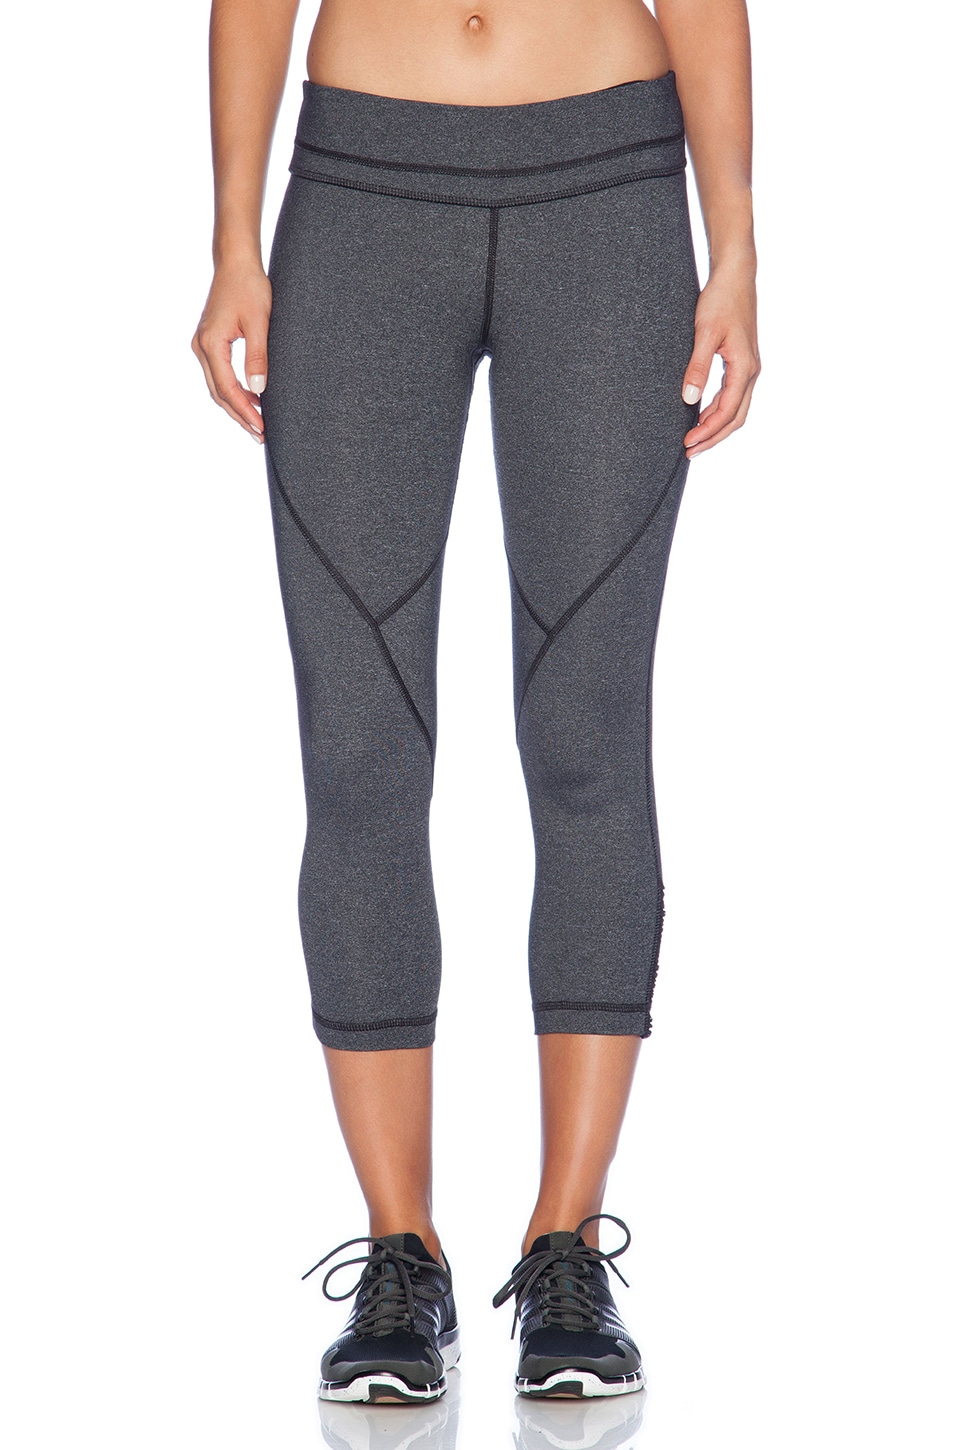 Vimmia Curve Pant in Heather Charcoal